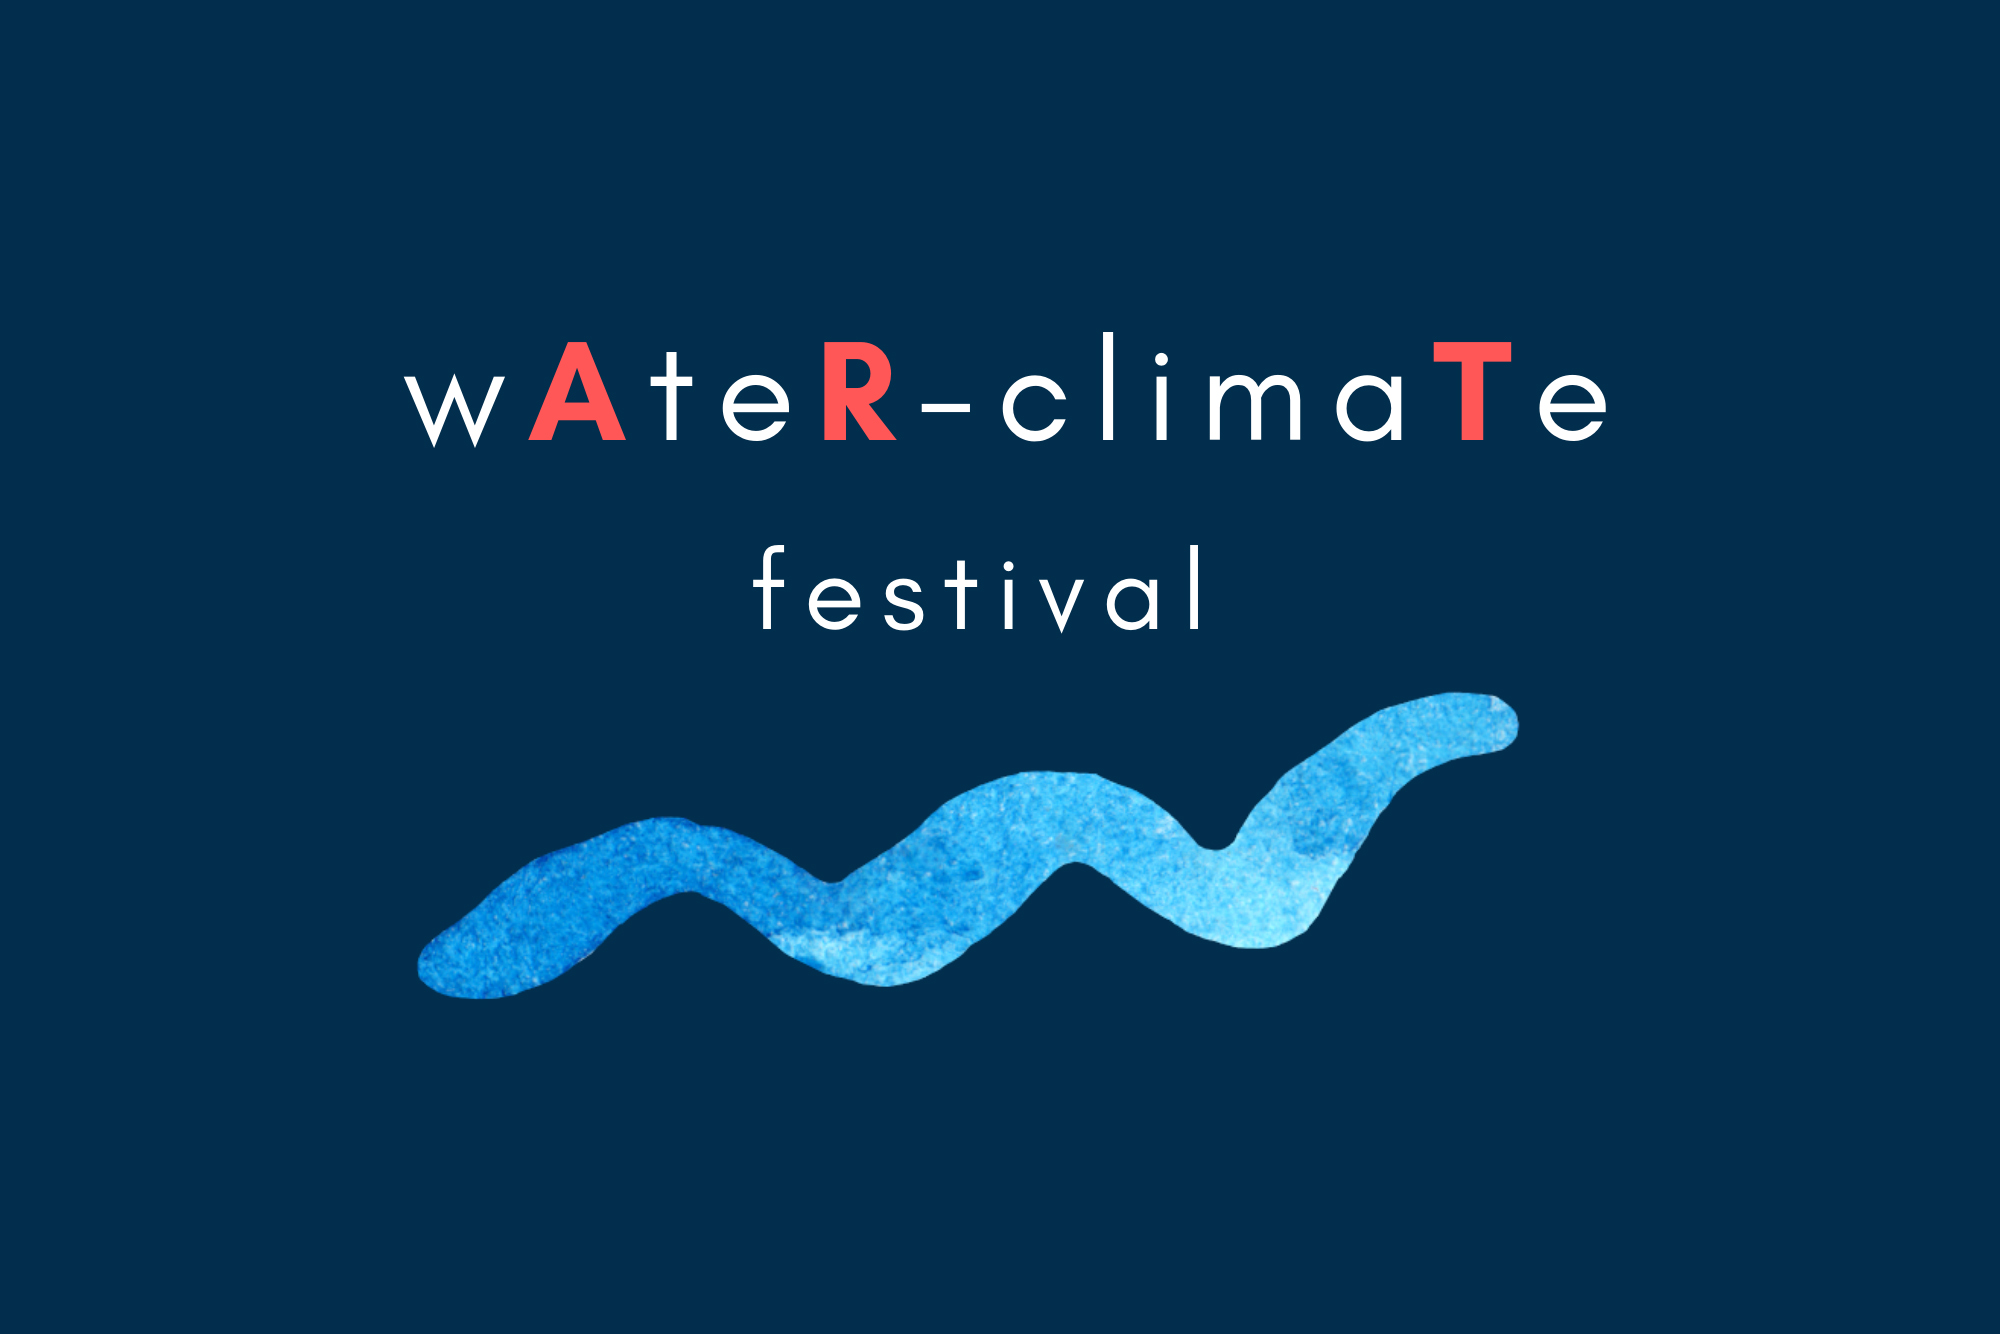 wAteR climaTe Festival